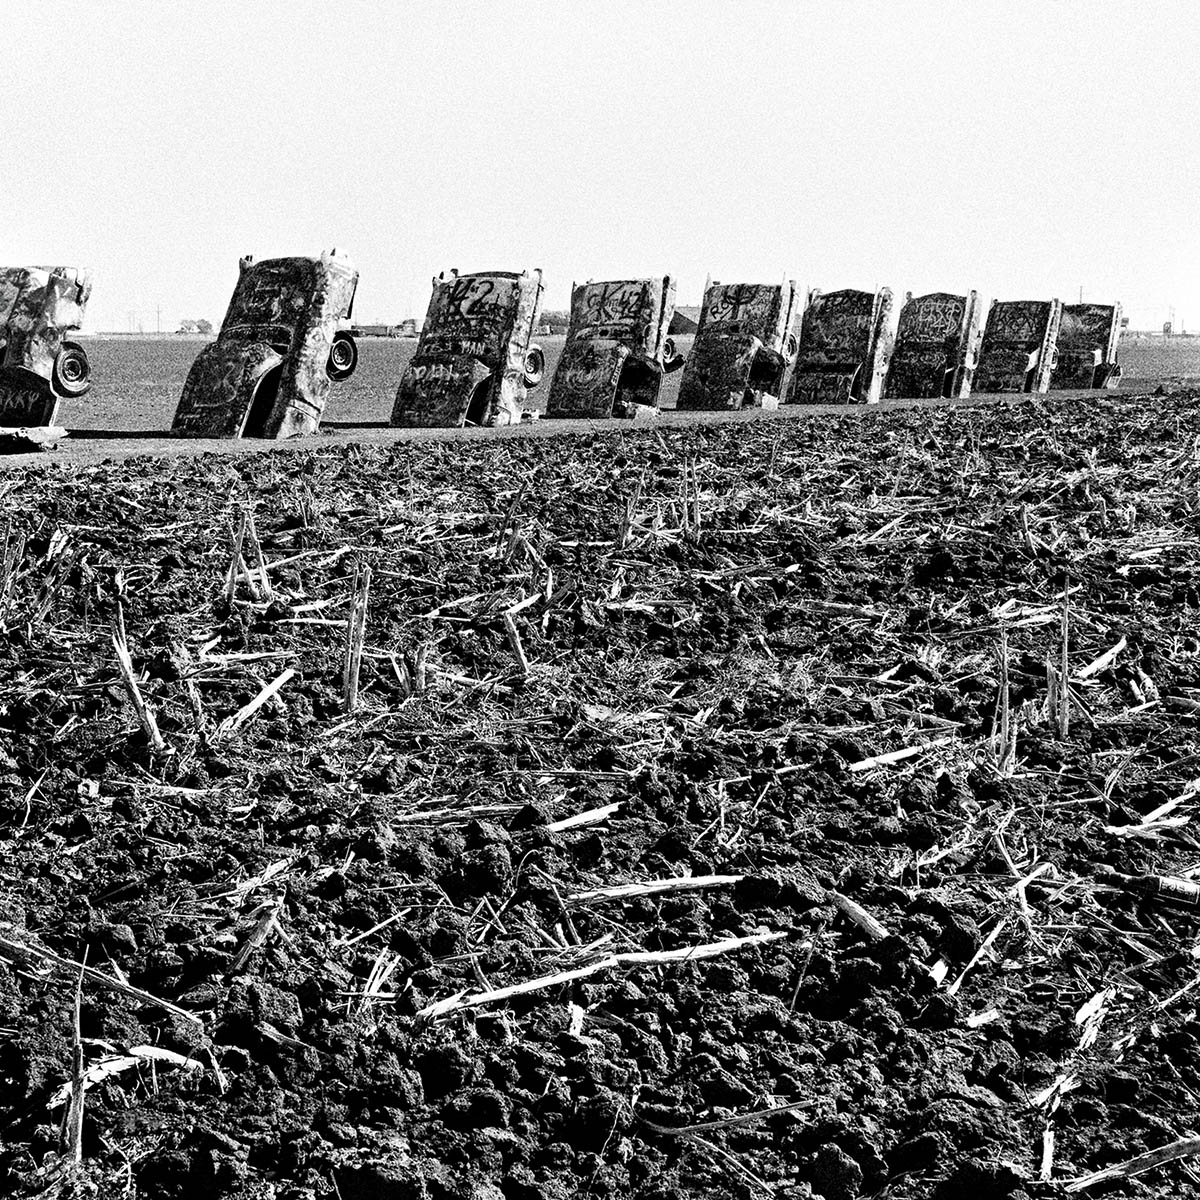 Cadillac Ranch near Amarillo, Texas, 1997